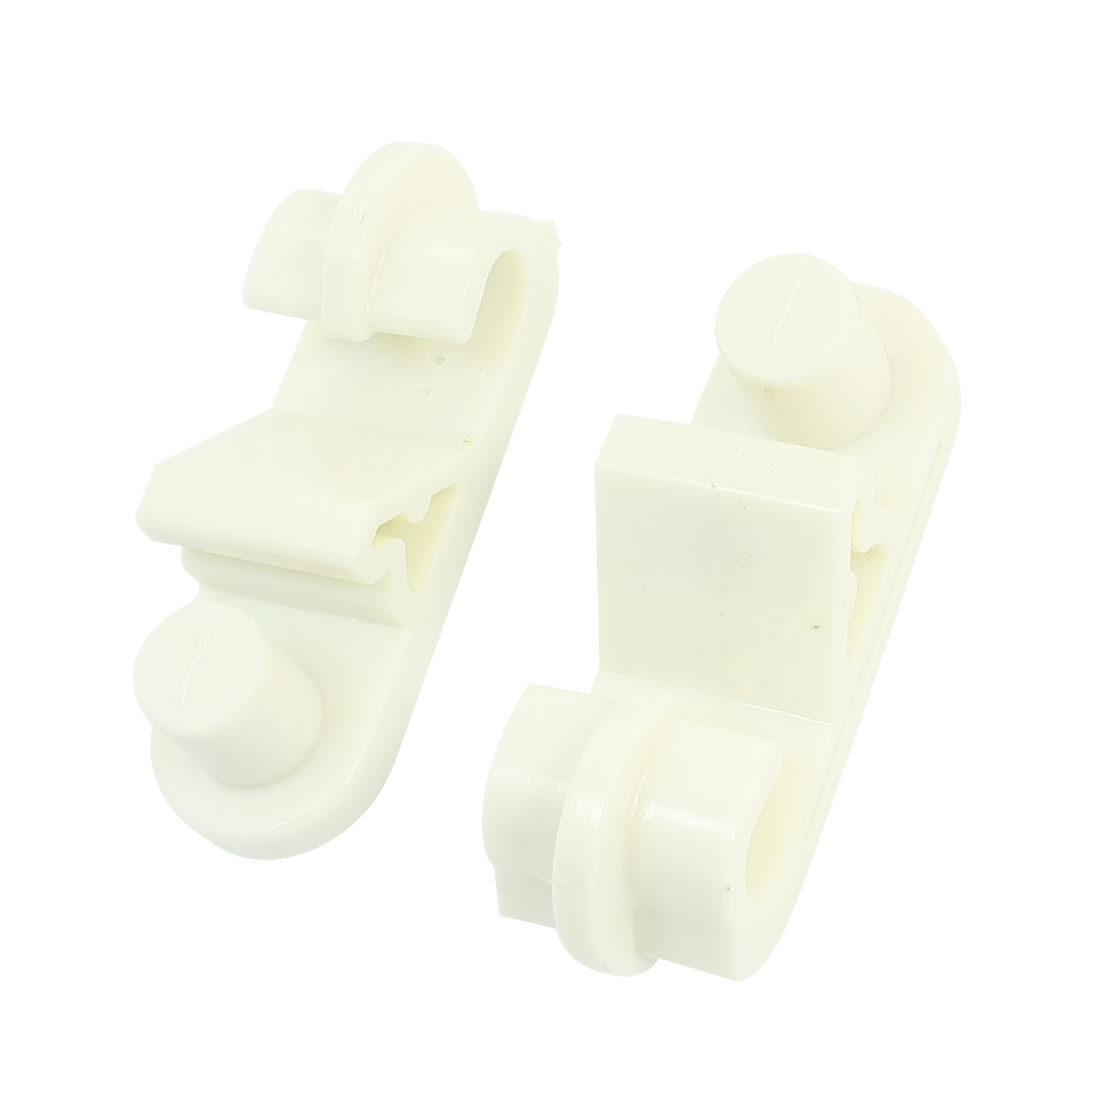 2Pcs Ivory White PVC Communication Cable Control J Hook Wire Support Glide Hanger 18mm 150Kg